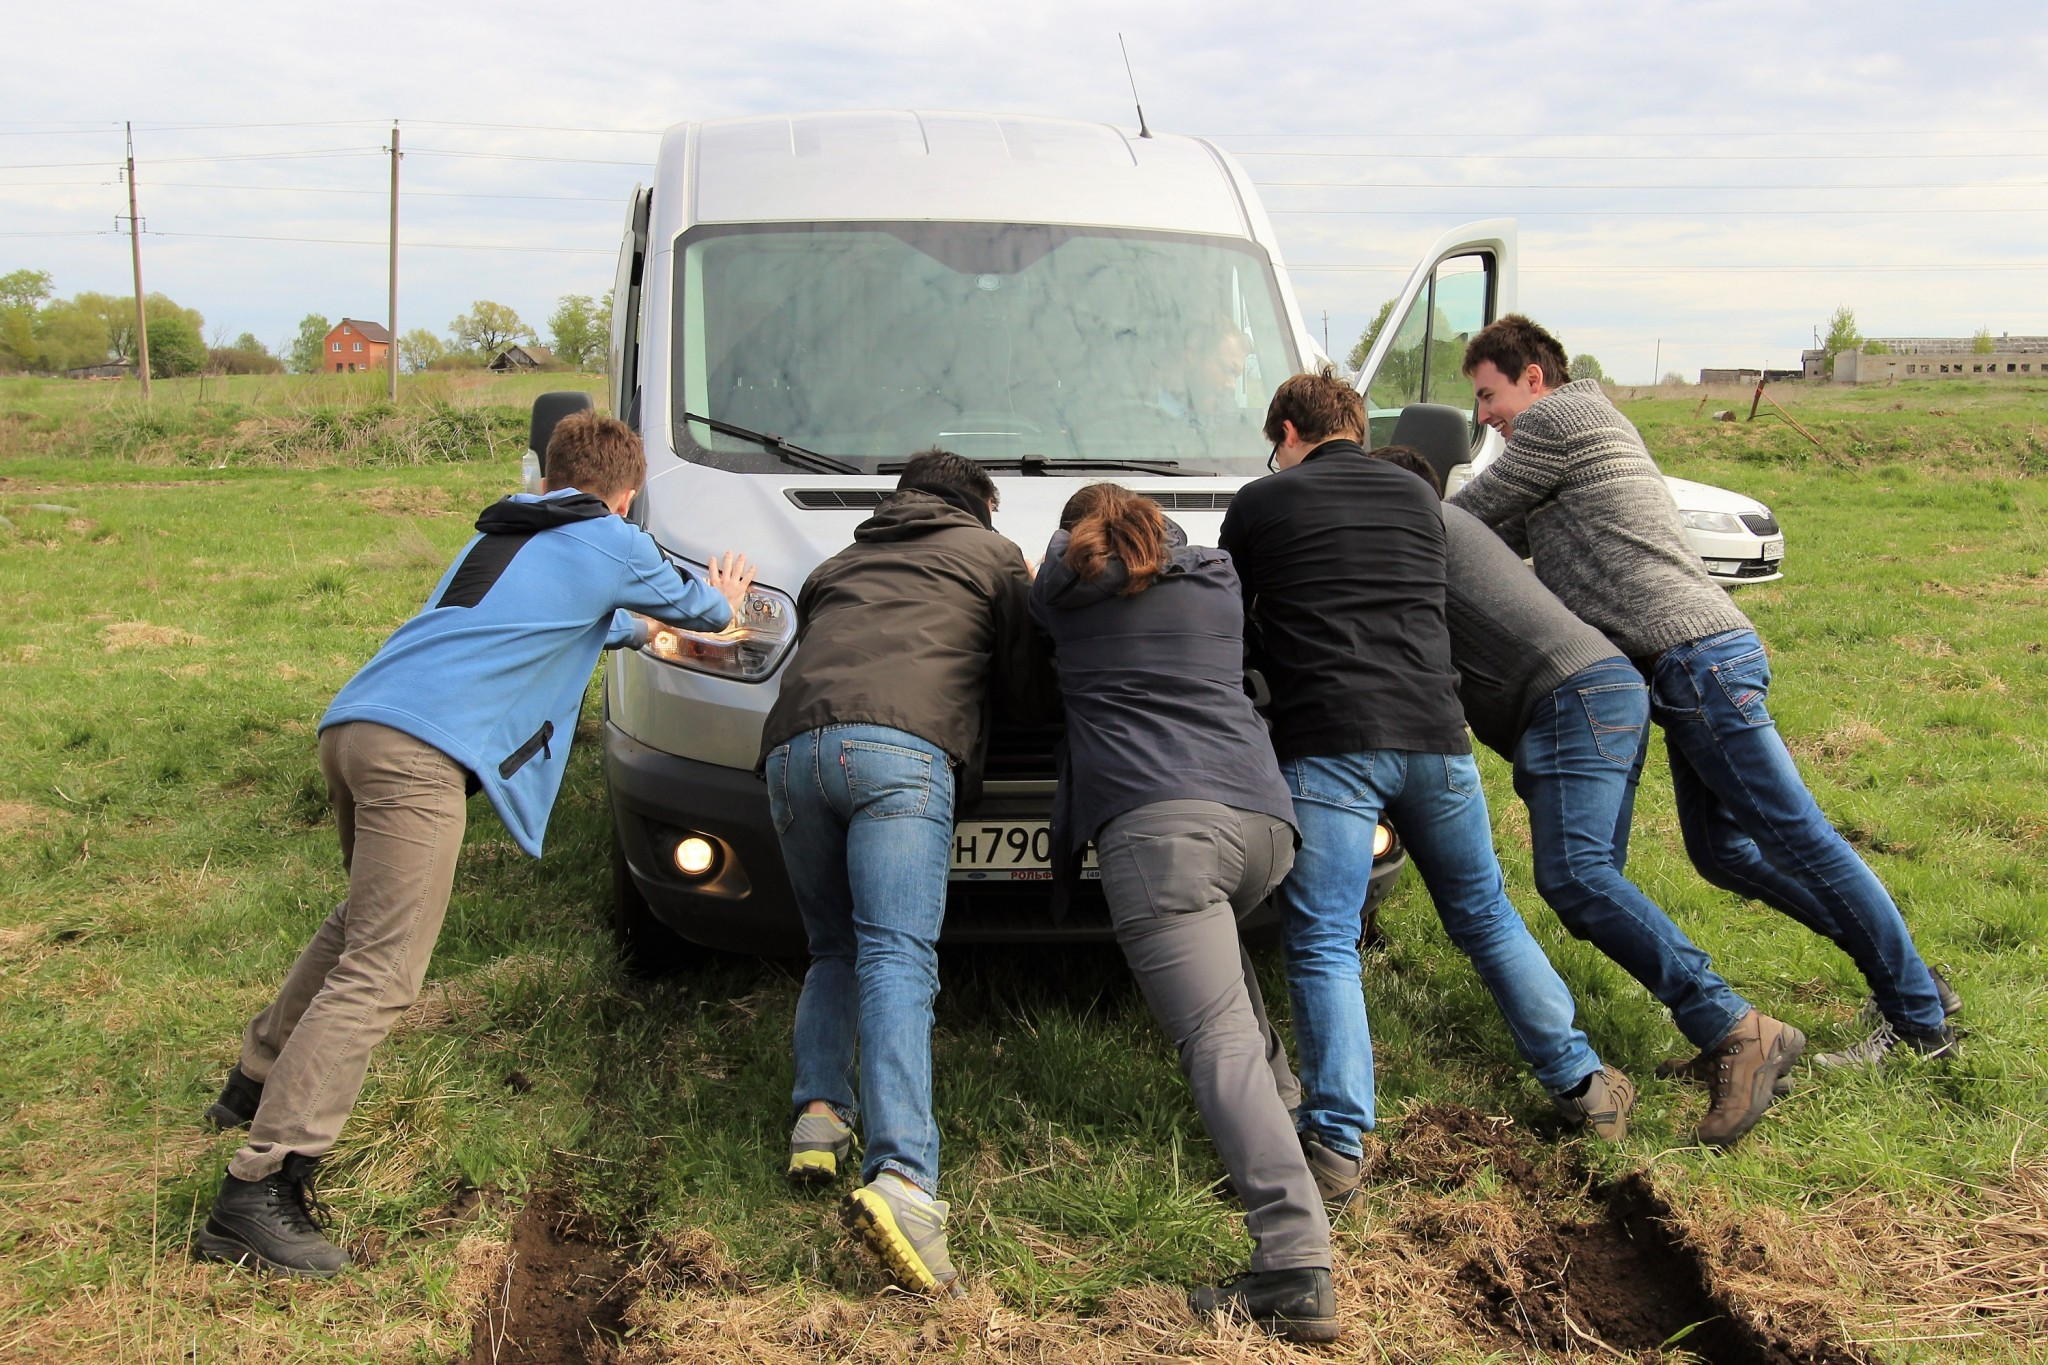 With the balloons safely afloat, the Skoltech crew thought it was in the clear. But alas, one of their vans got stuck in the mud, requiring the team spirit SE is known for. Photo: Skoltech.